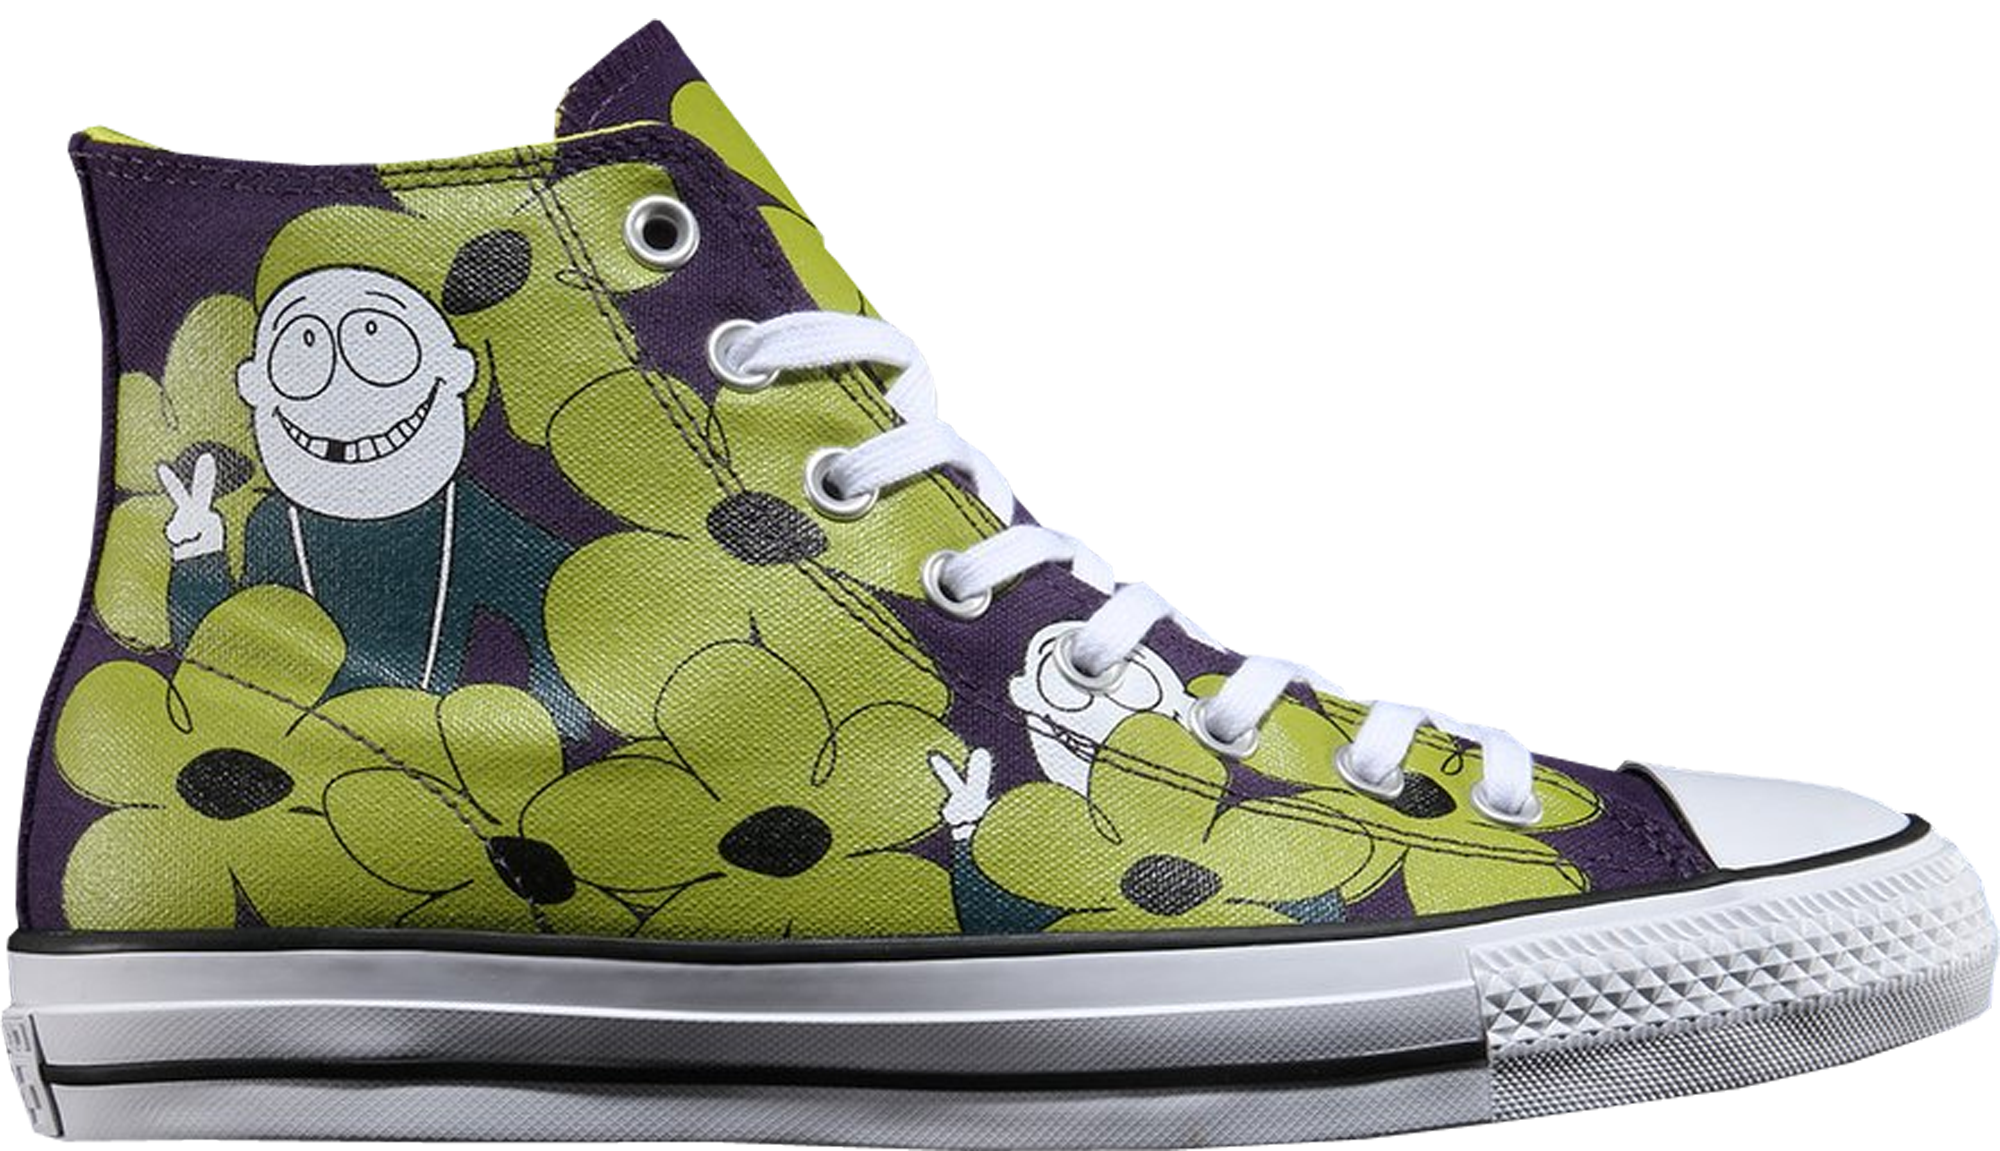 53334ec4095c Dinosaur Jr. x Converse Chuck Taylor All-Star Hi Green - StockX News